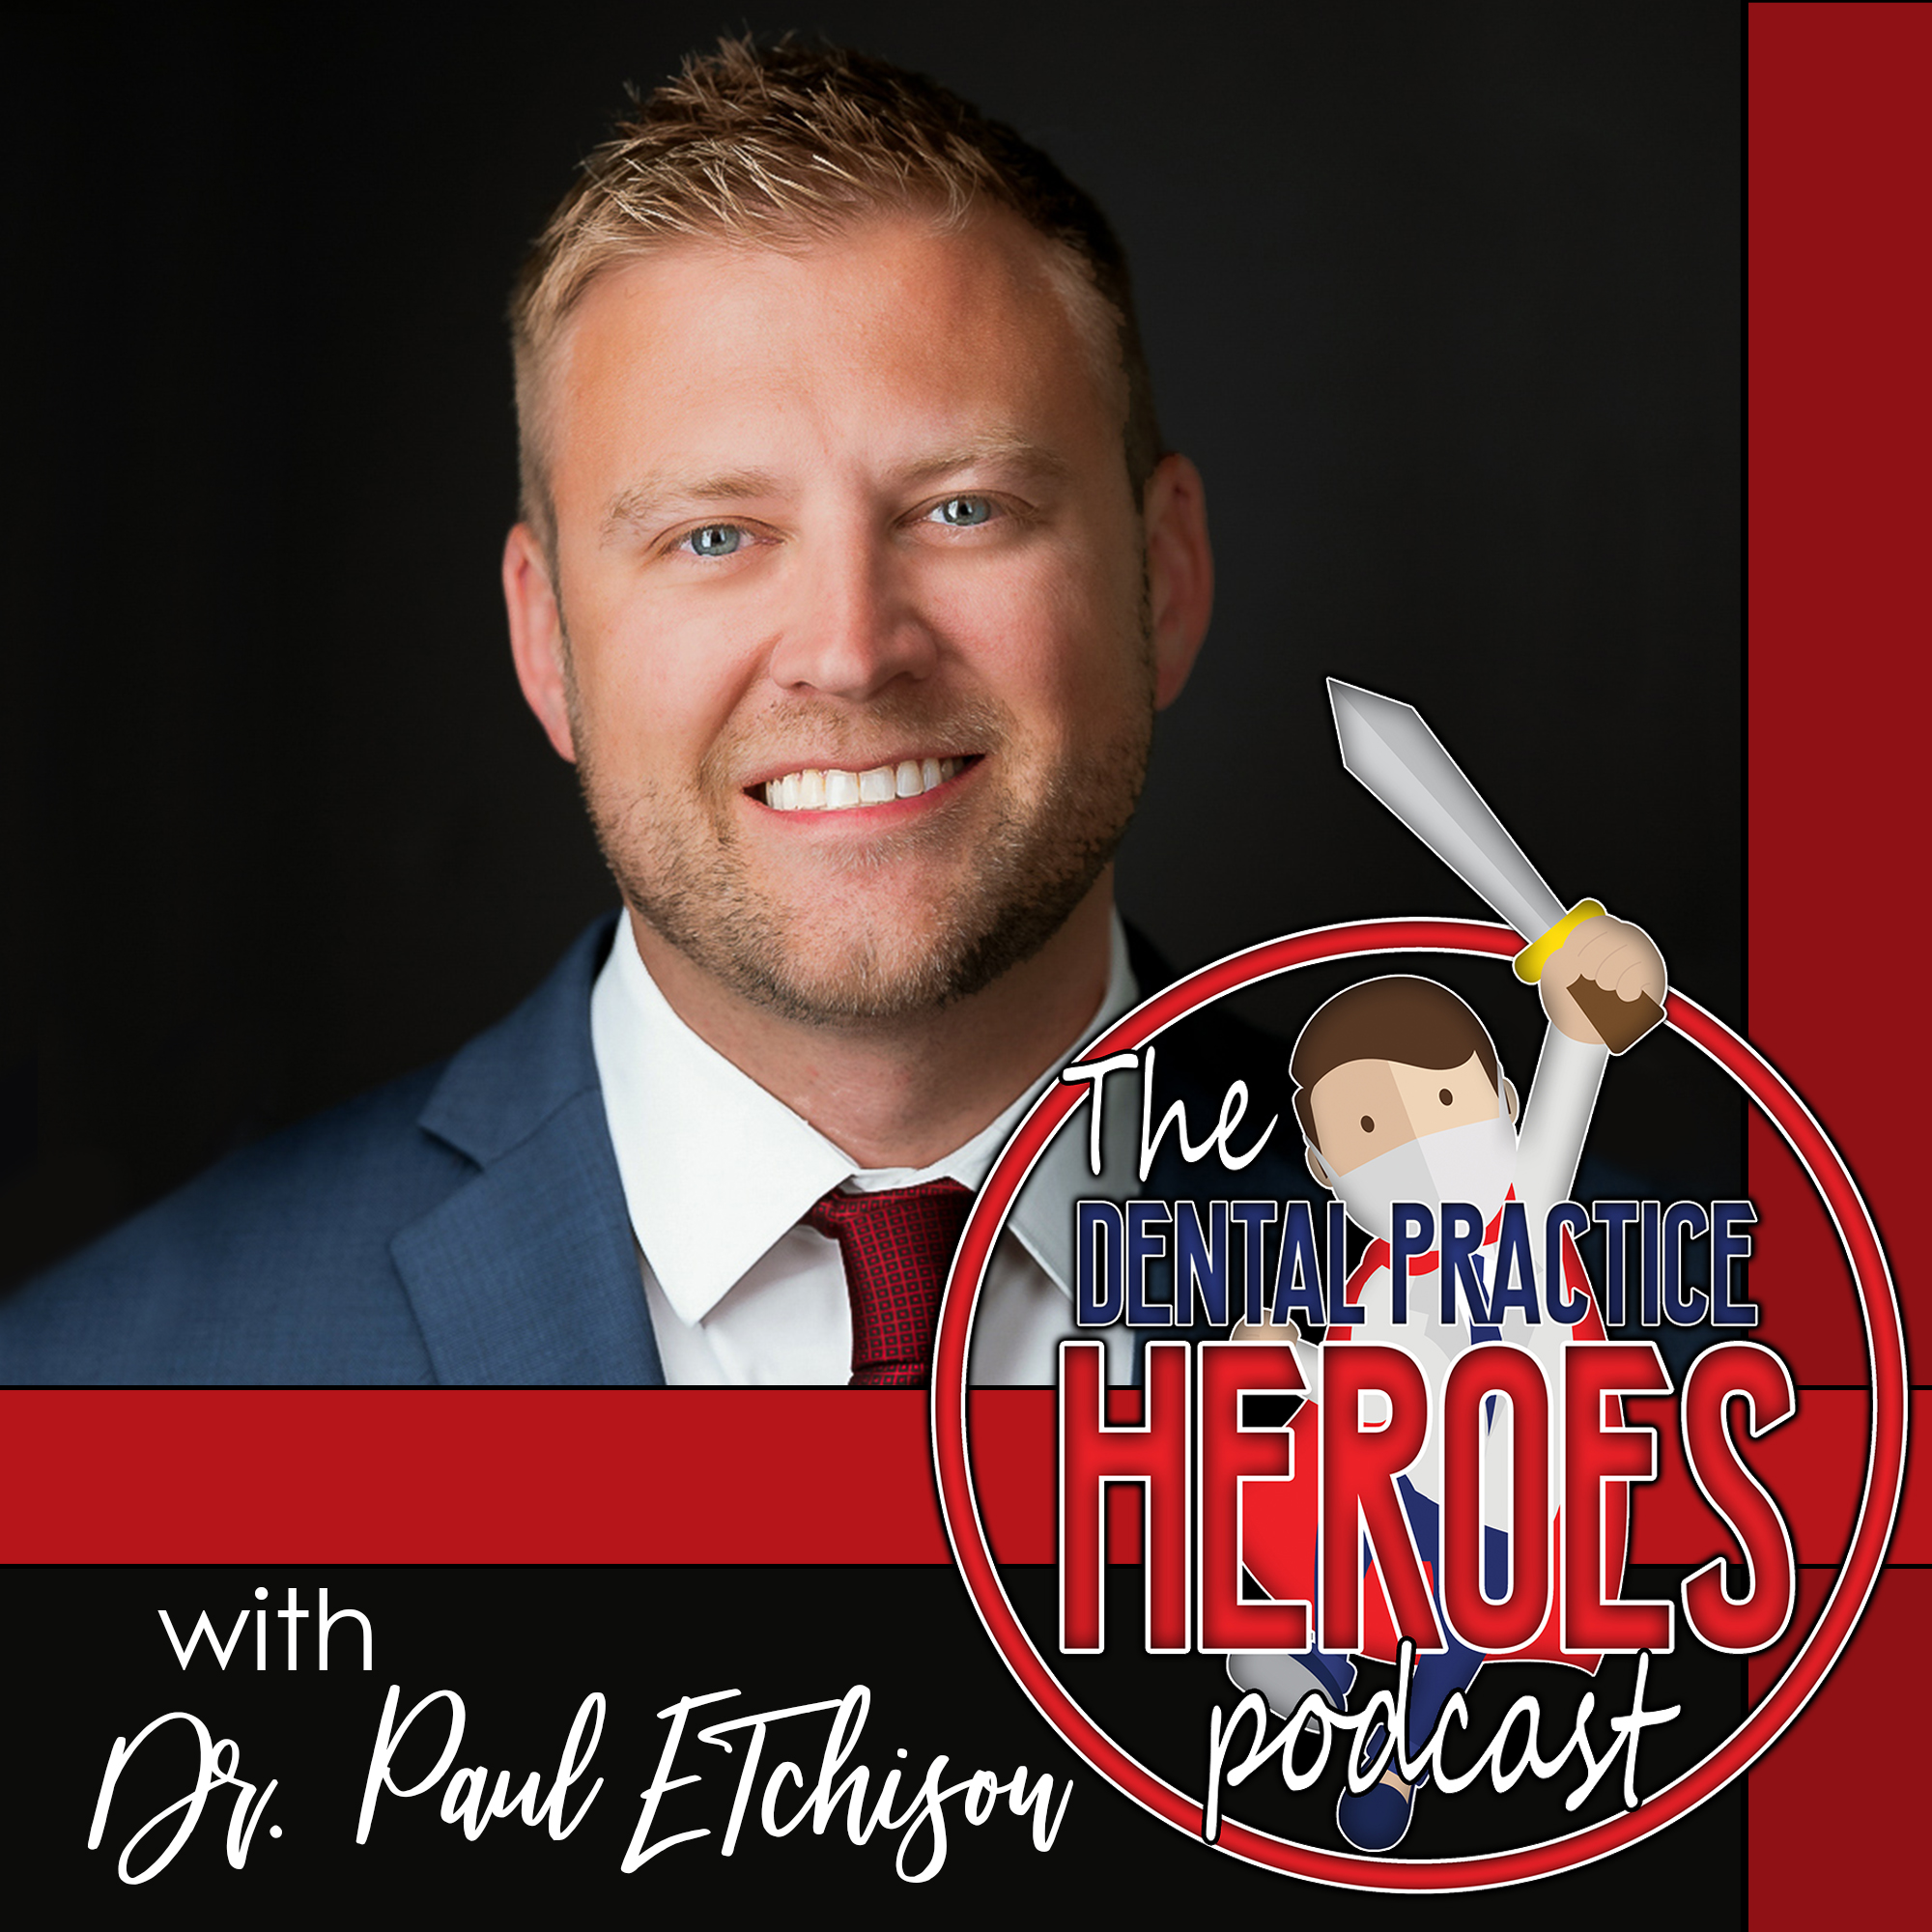 The Dental Practice Heroes Podcast show art